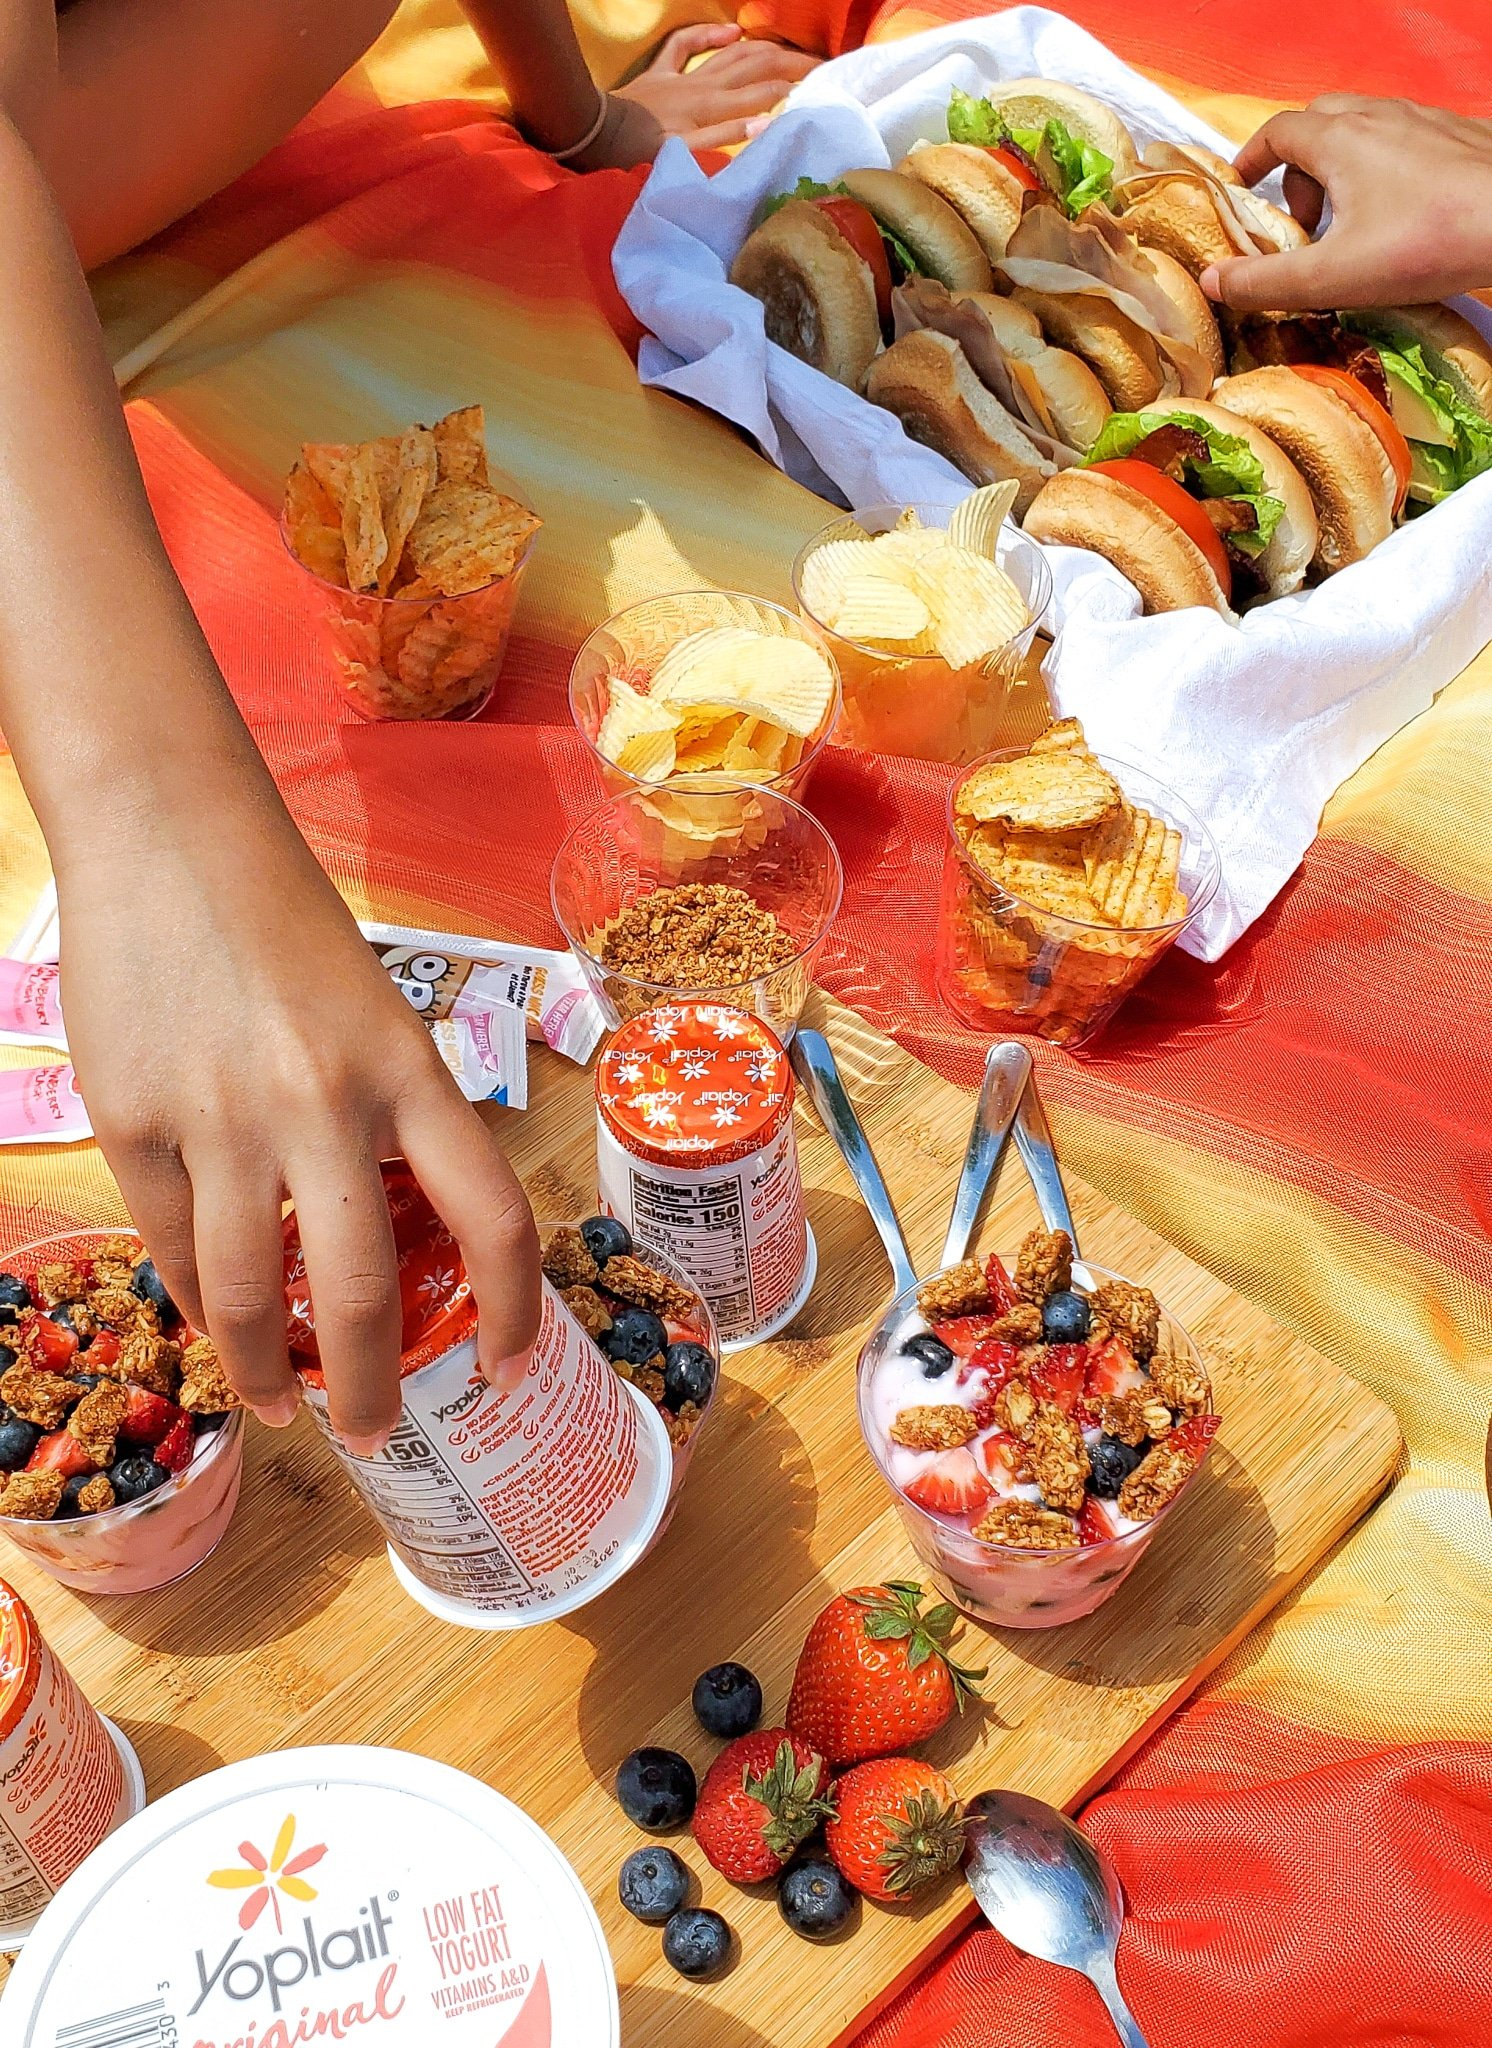 Backyard Picnic with Yoplait Food Spread. Grab your picnic baskets! It's time to host your very own backyard picnic featuring the foods your family loves. No need to leave home for this bunch of fun, just pick a date and then prep your picnic baskets.